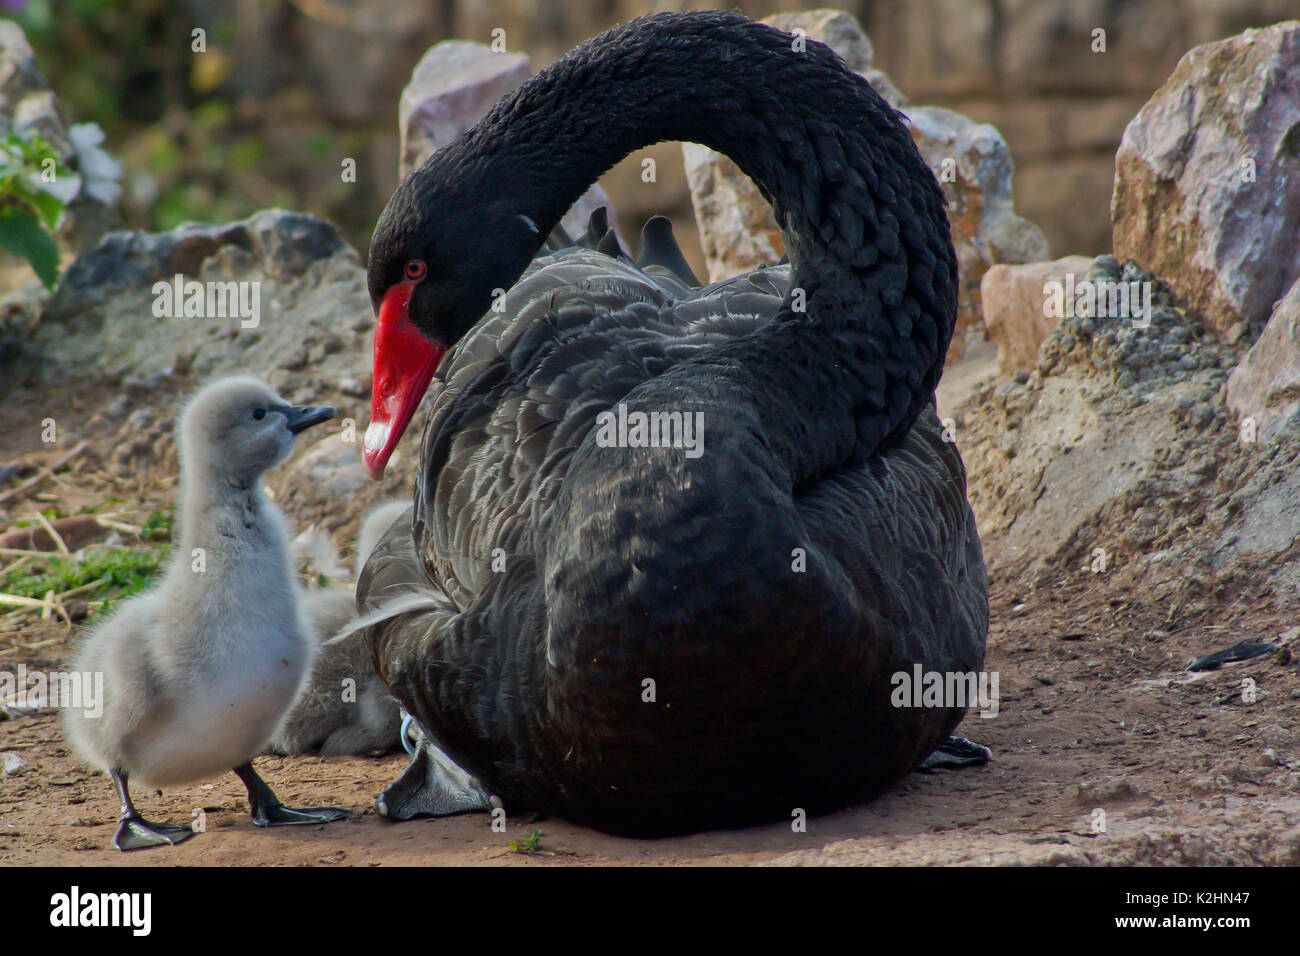 A black swan with her cygnets - Stock Image